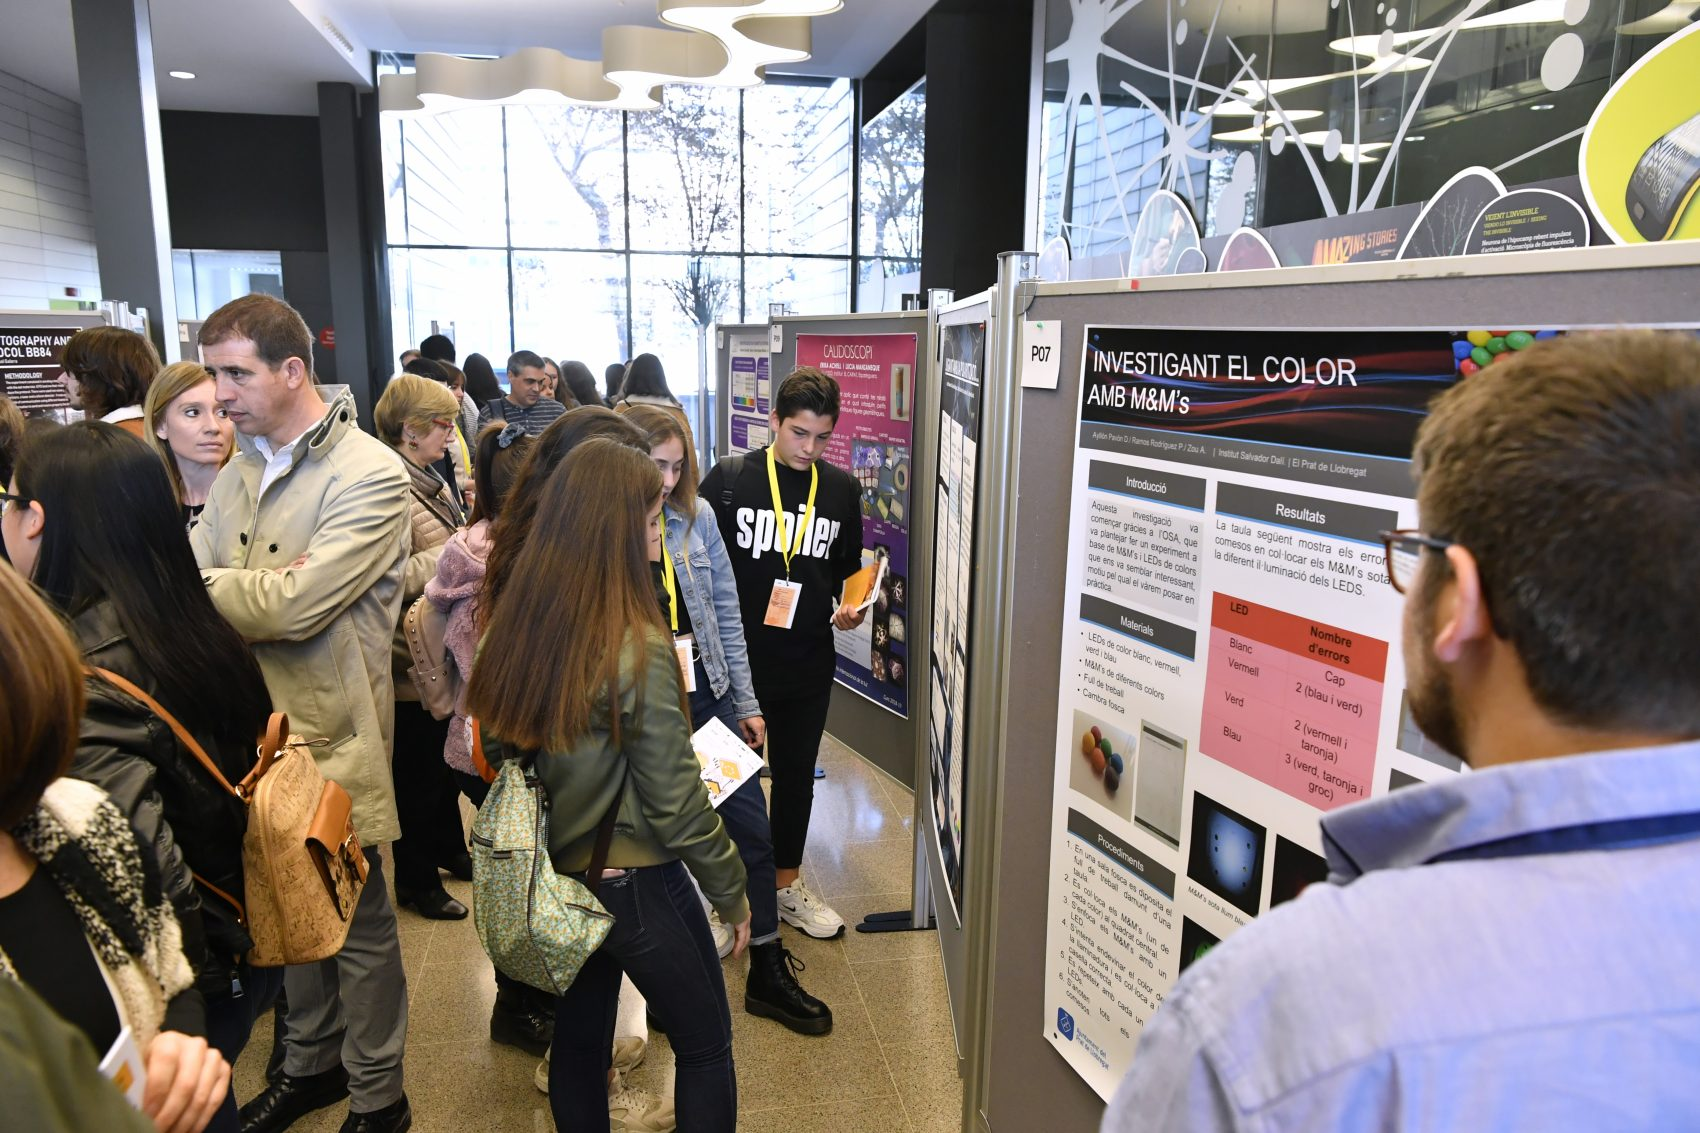 People looking at the posters of the Young Photonics Congress